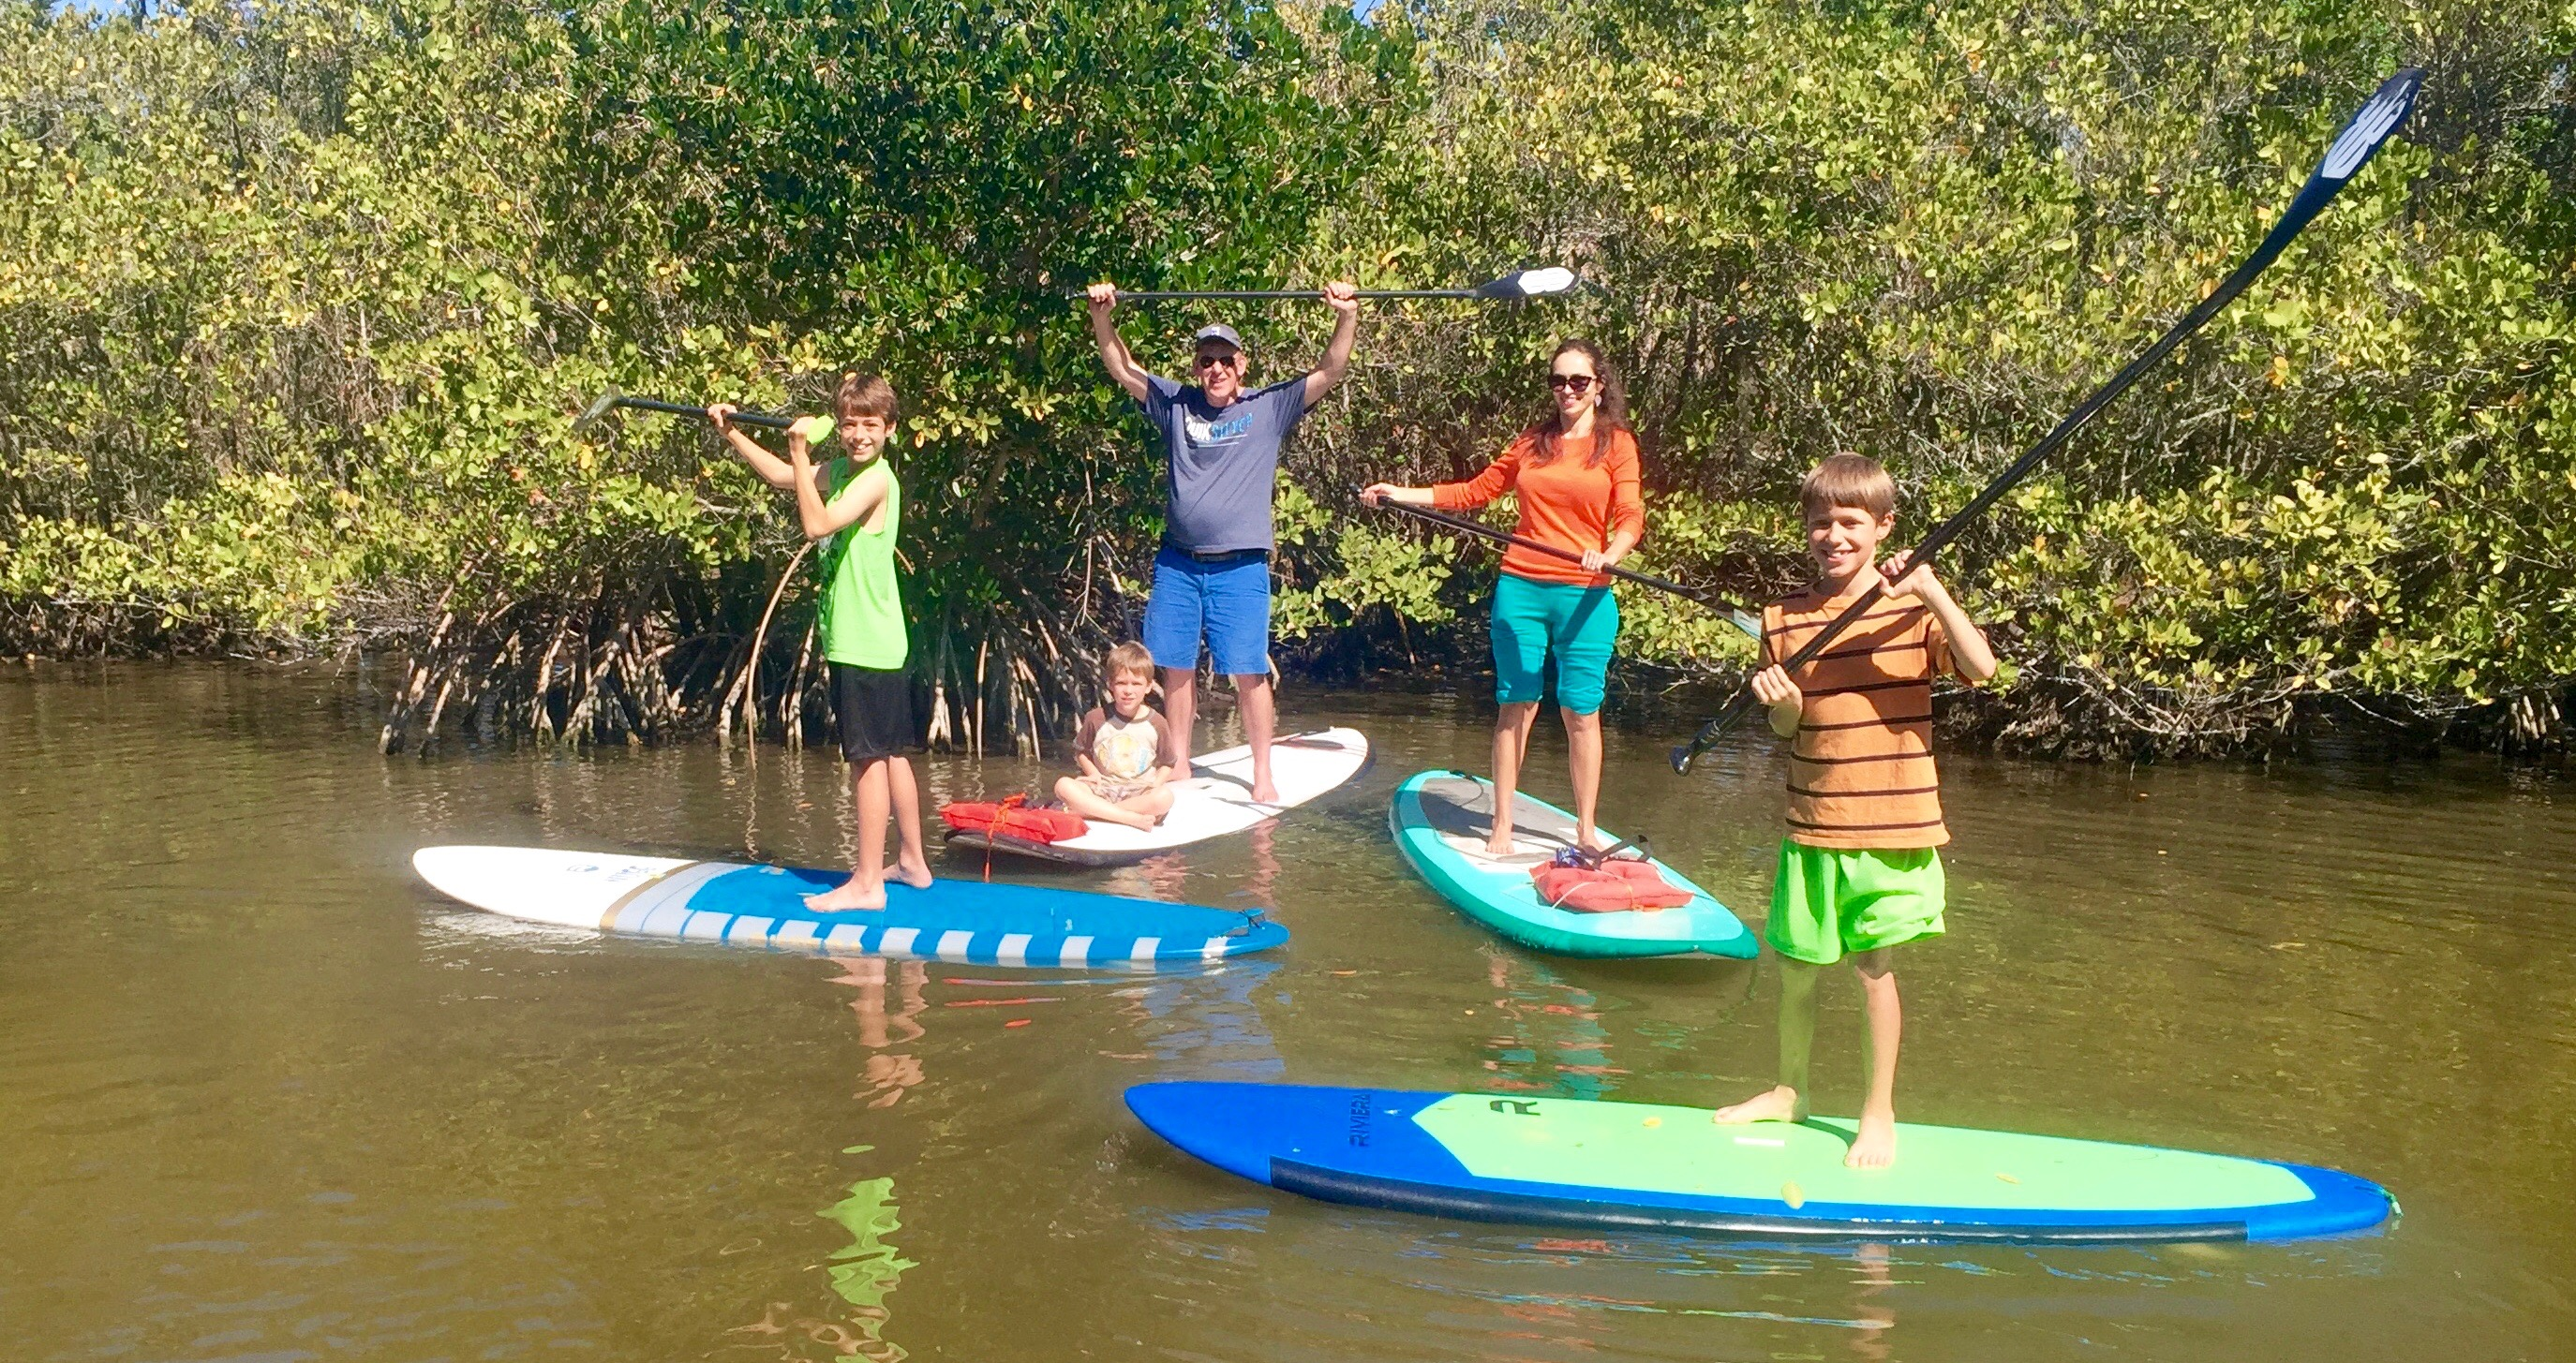 Standup Paddle Board Rentals Lessons Sobe Surf & Paddle Cocoa Beach Merritt Island Florida SUP Lessons